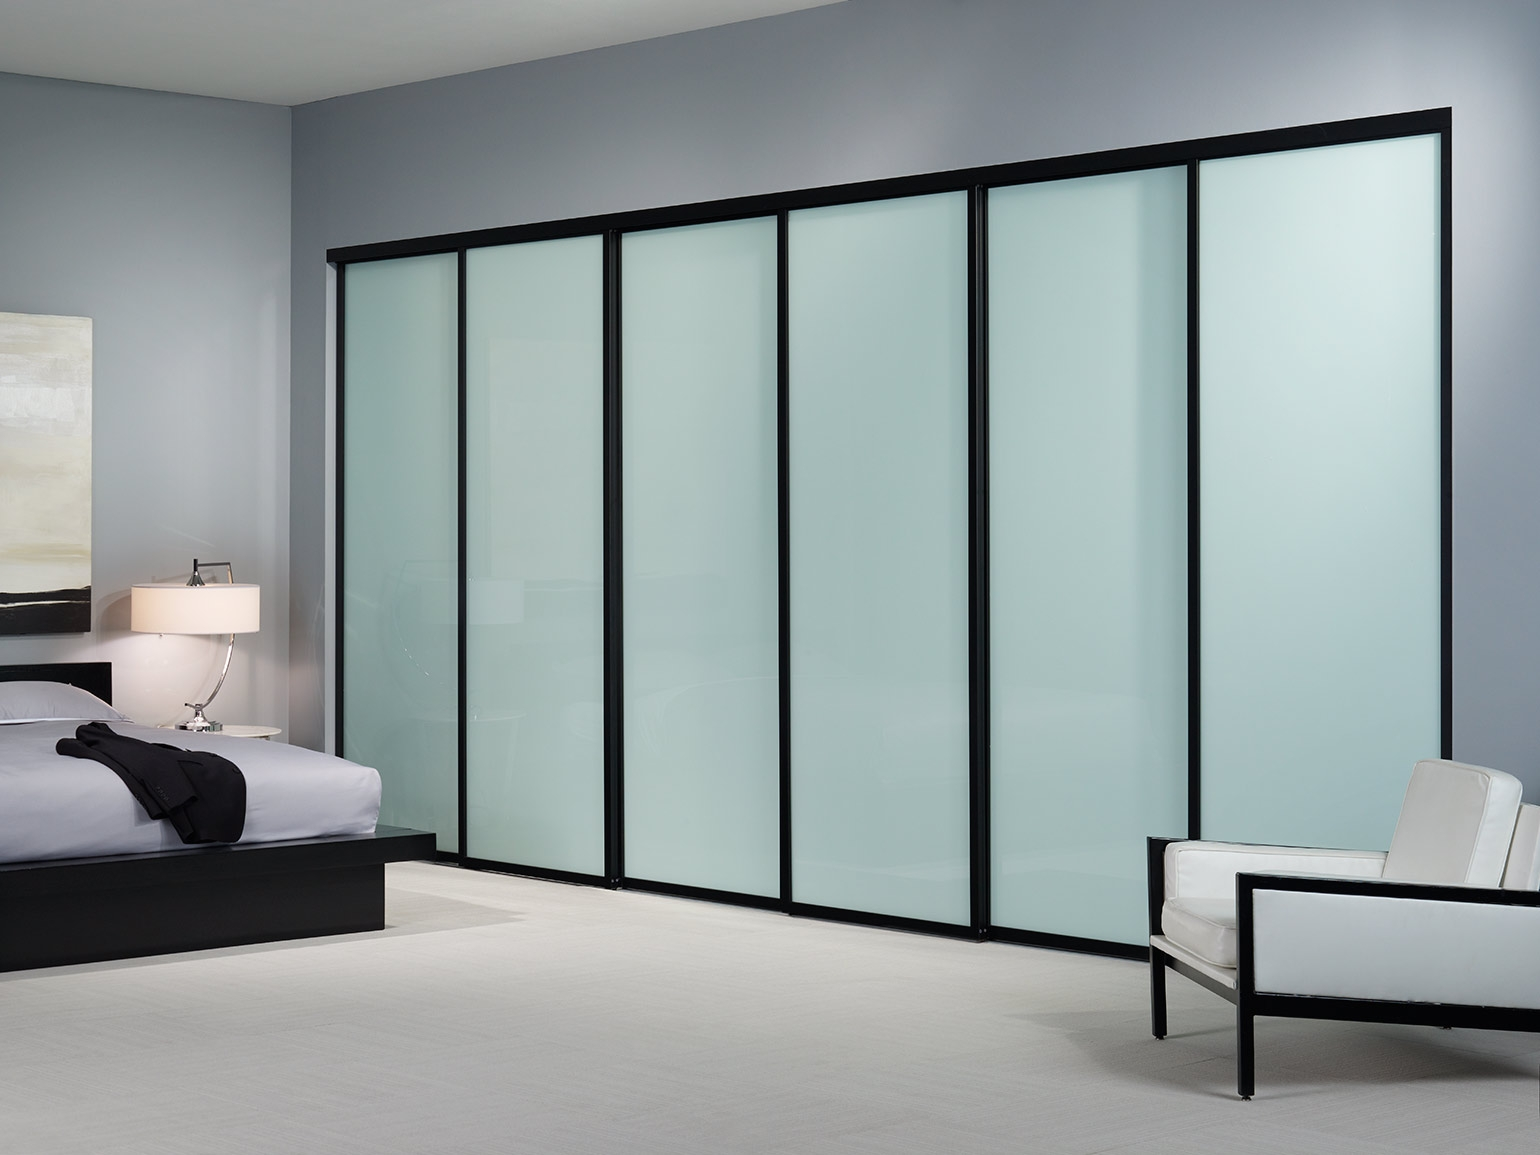 Frosted Sliding Glass Doors1540 X 1155